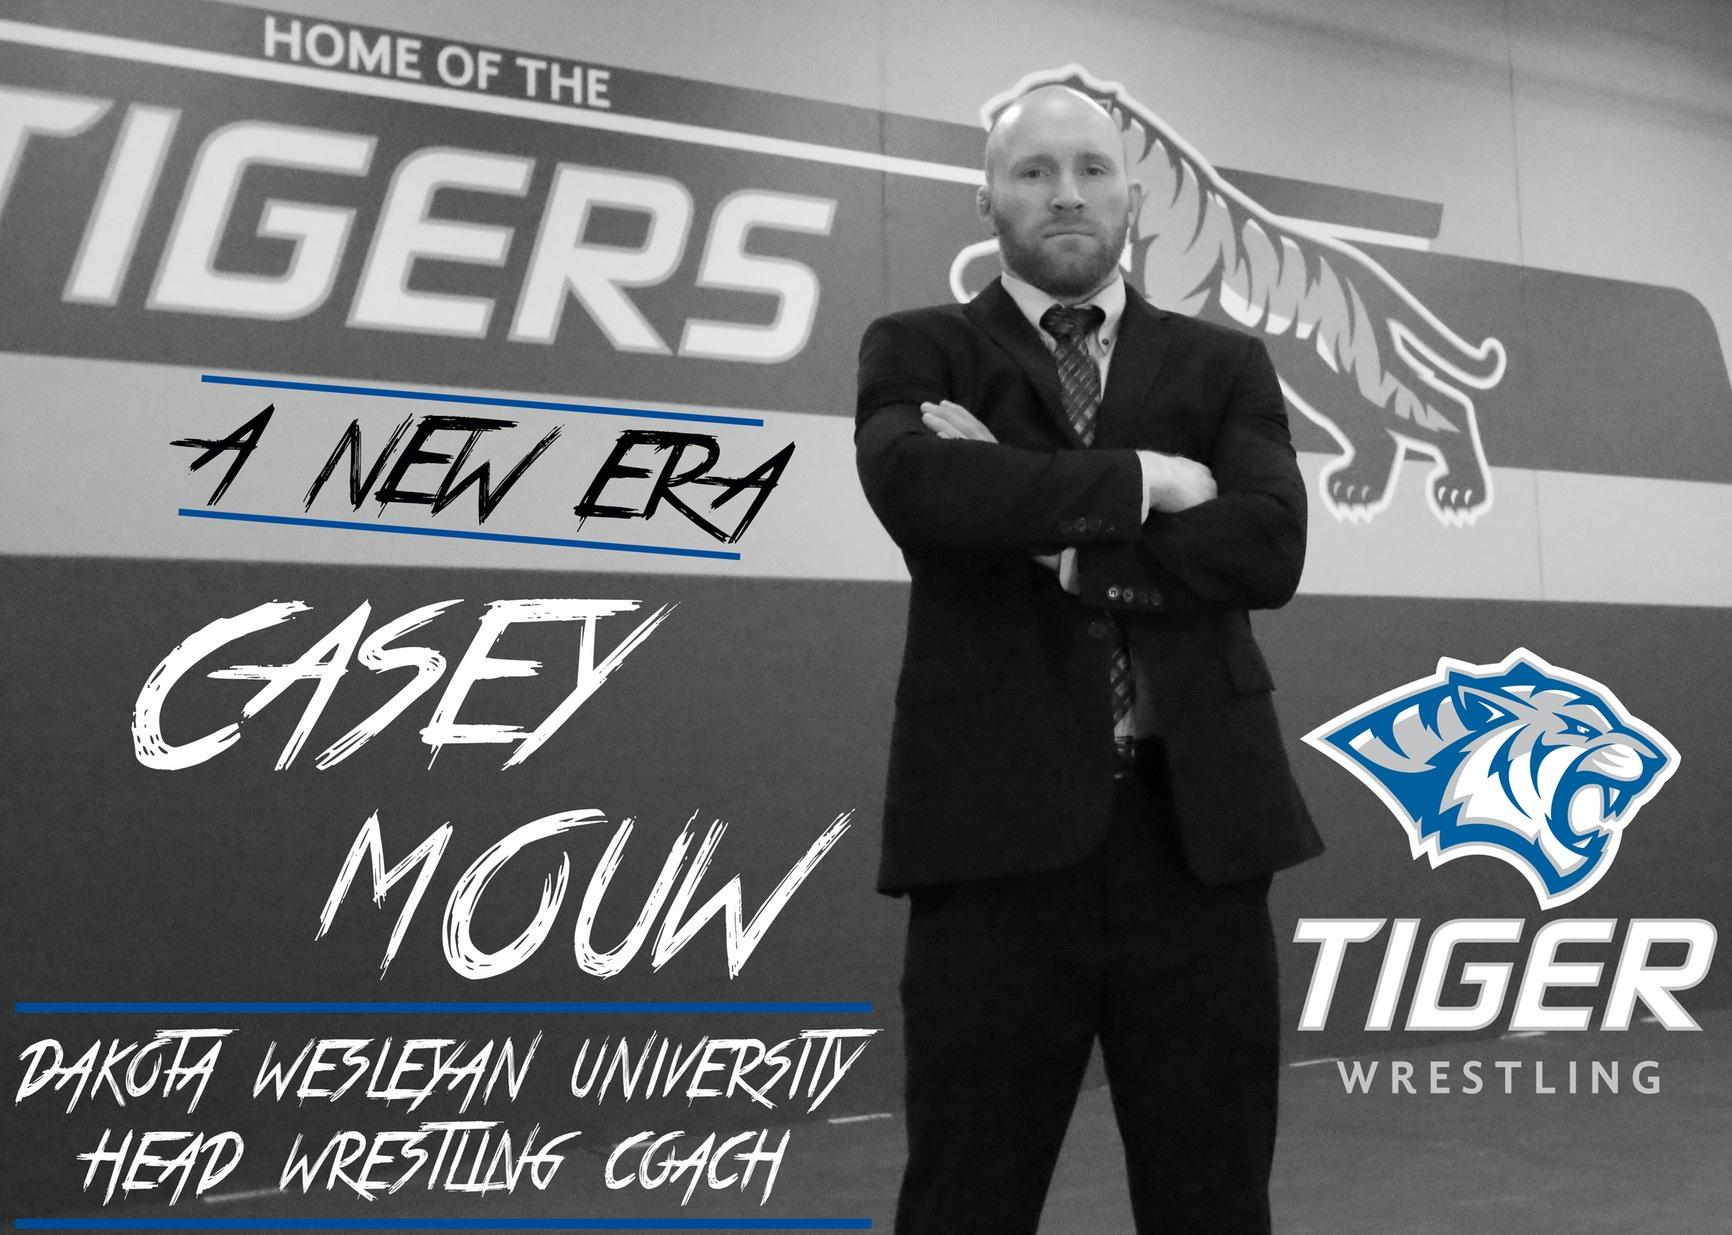 Casey Mouw named Dakota Wesleyan University head wrestling coach